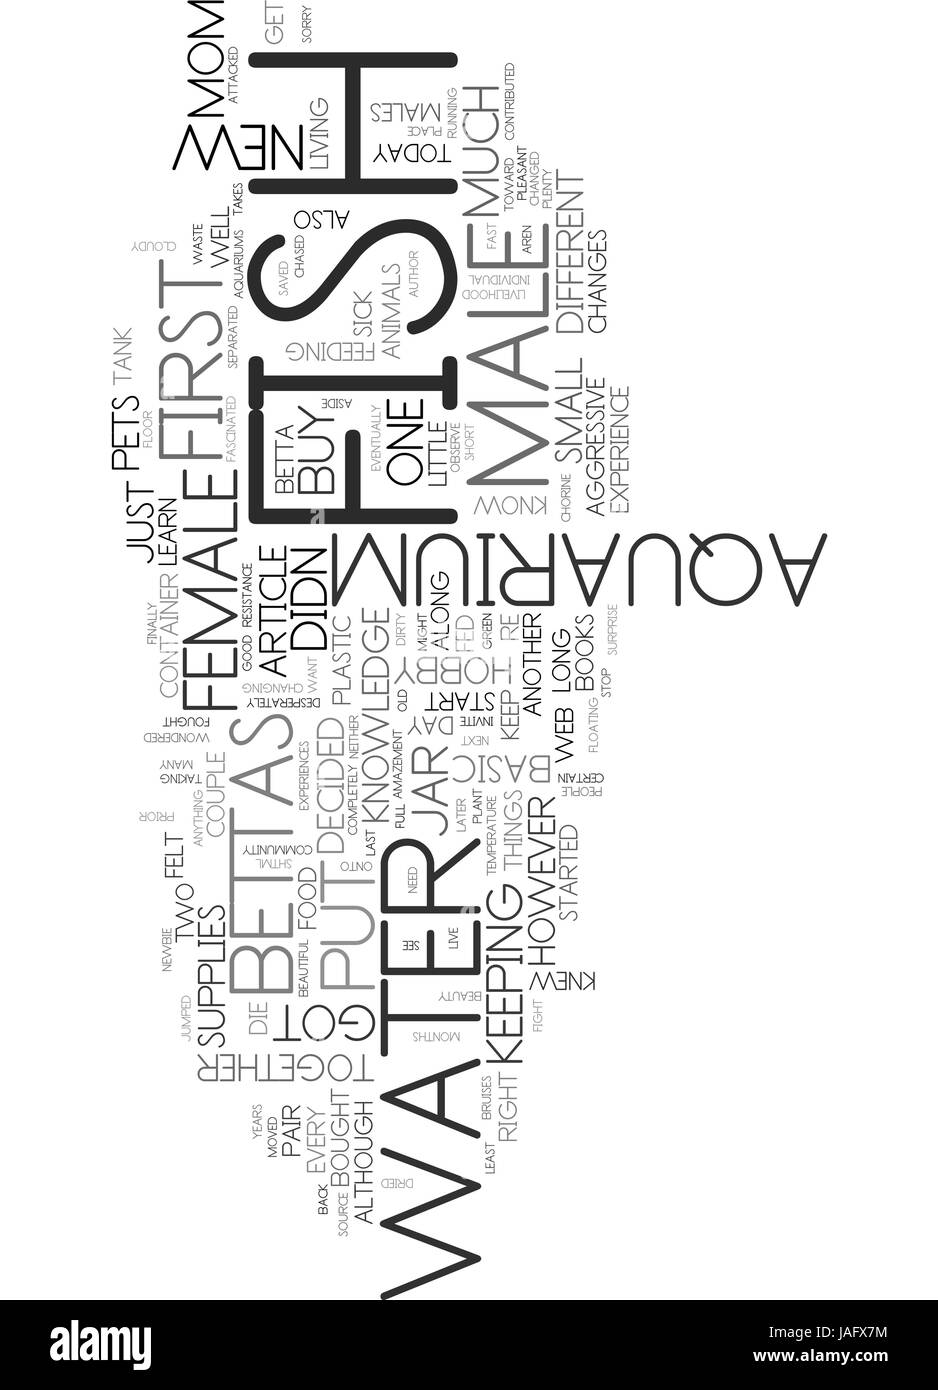 AQUARIUM SCREENSAVER WHERE CAN YOU FIND IT TEXT WORD CLOUD CONCEPT - Stock Image